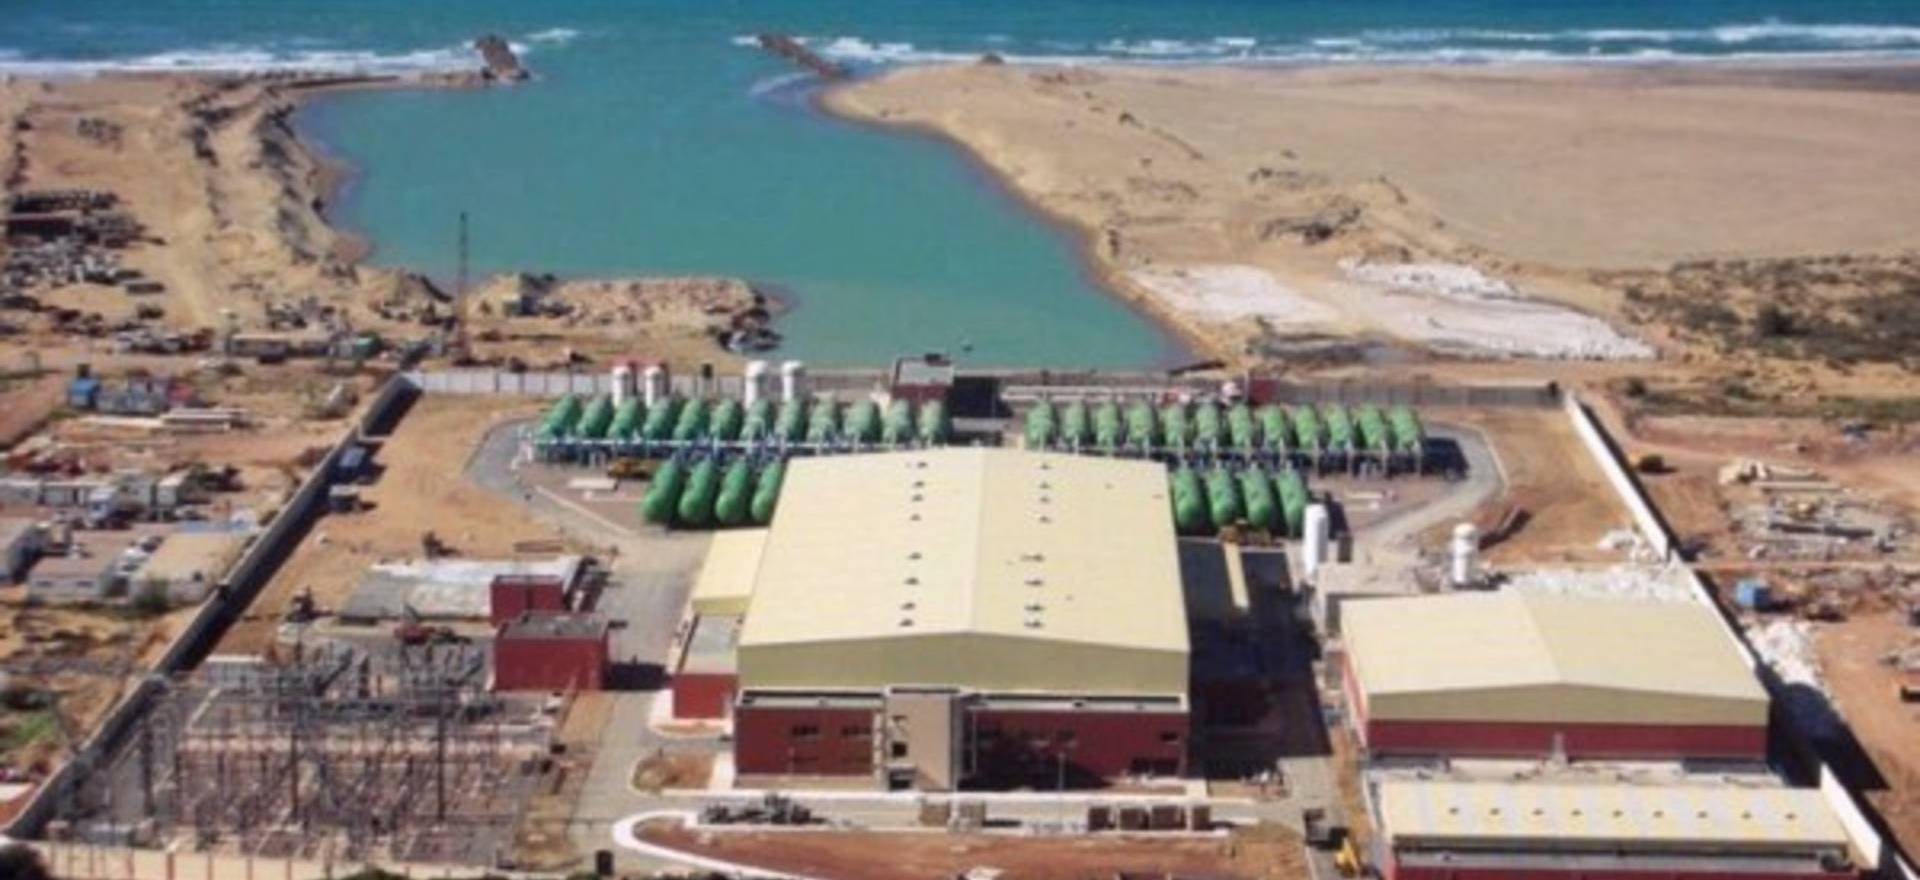 Desalination Plant expansion in Mostaganem -Algeria- (2019-20)